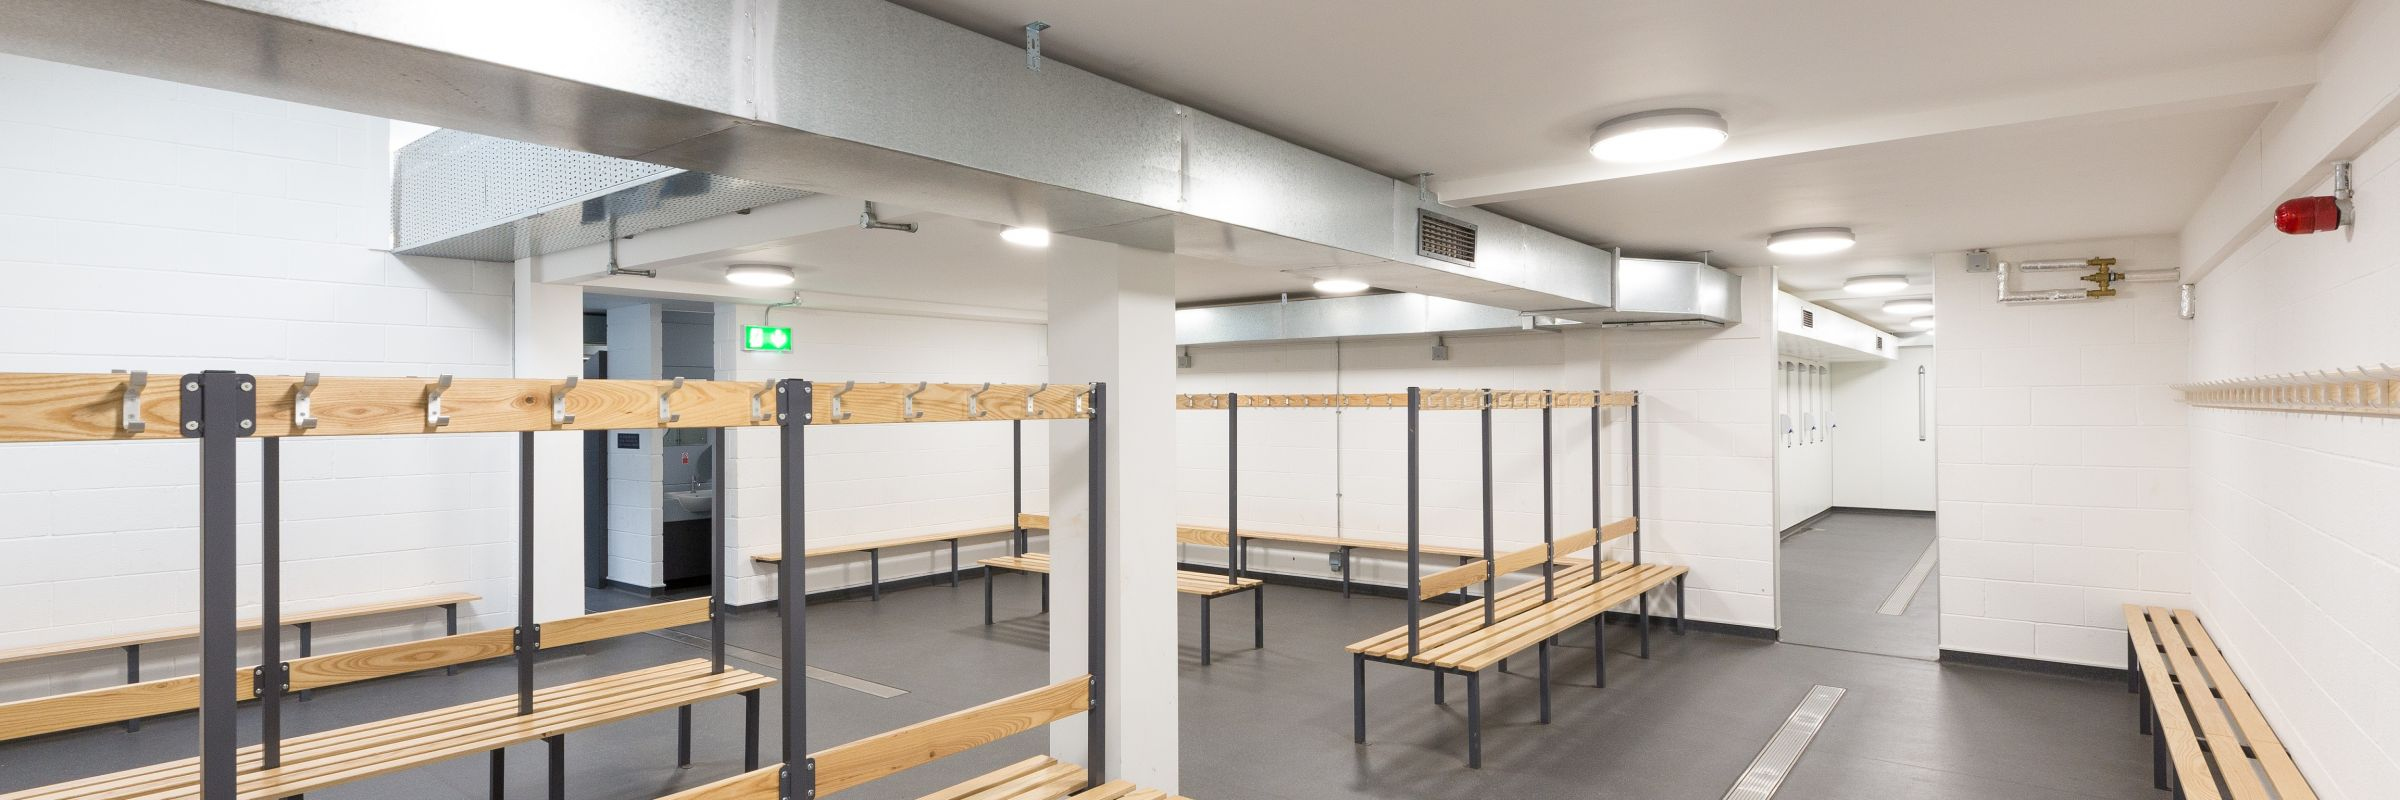 Smart, durable refit for Exeter School's changing room